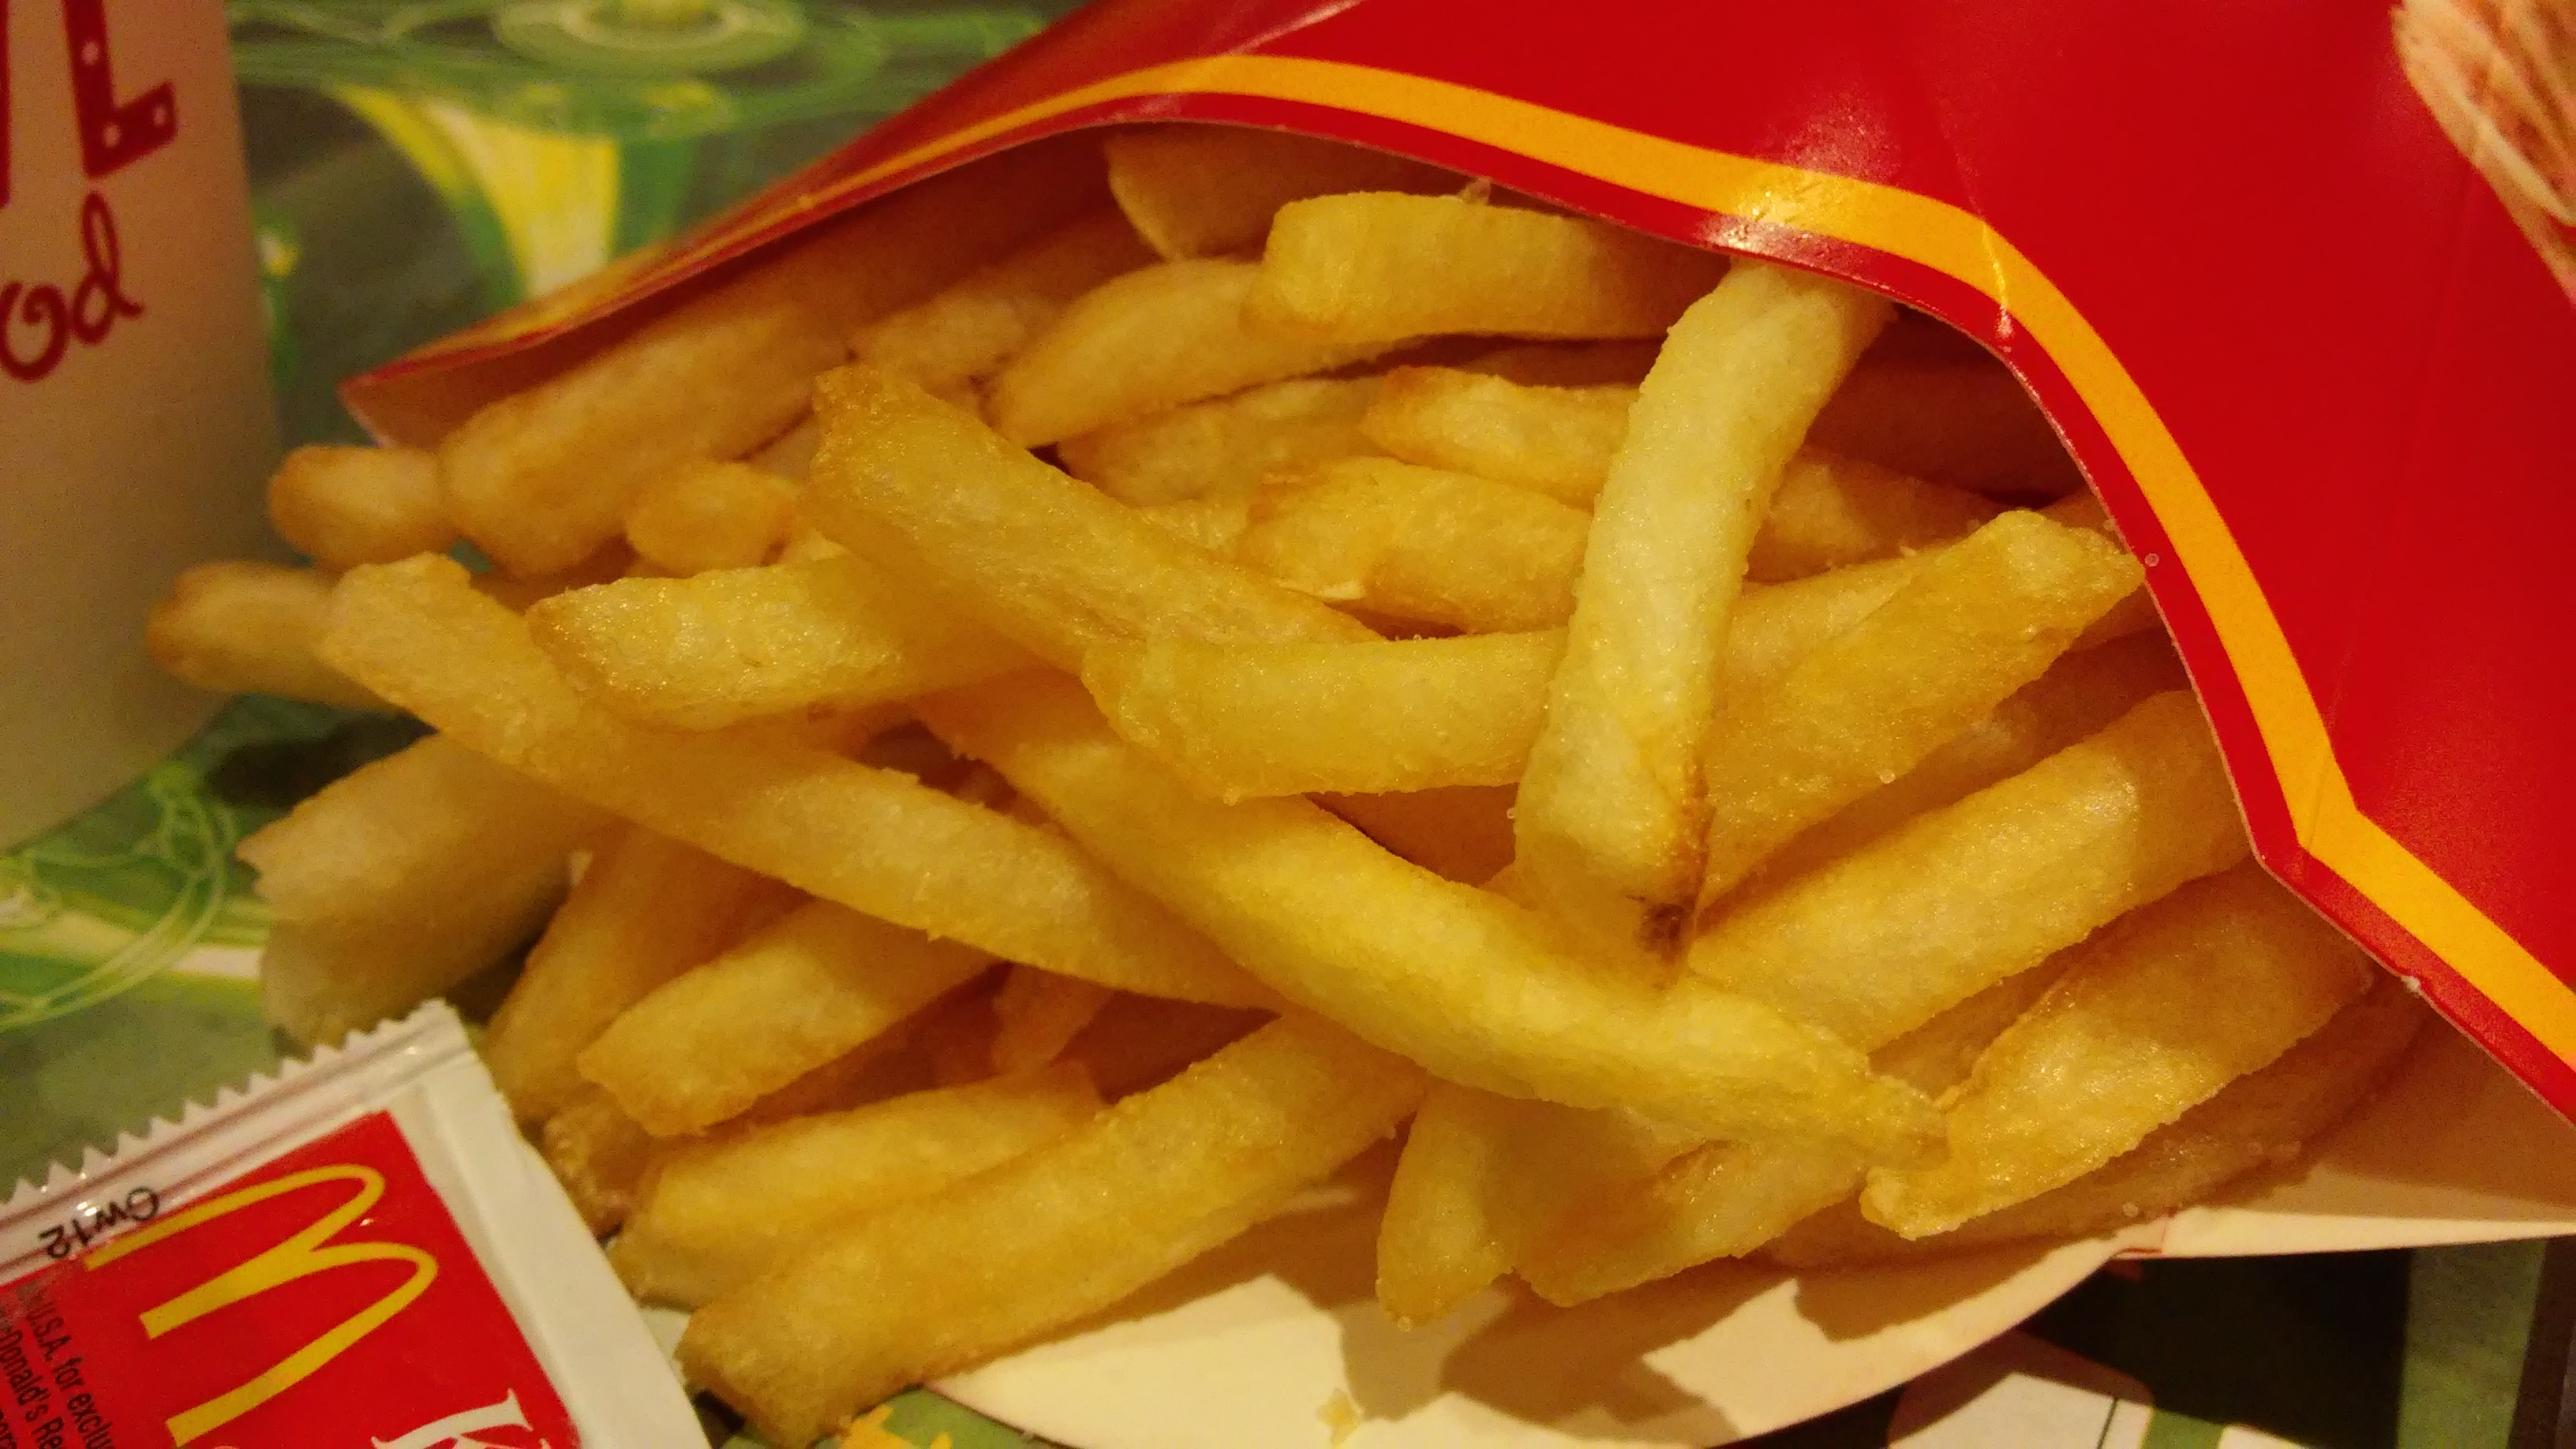 HK_Kln_Bay_Telford_Plaza_McDonalds_Restaurant_food_French_fries_Nov-2014_LG2